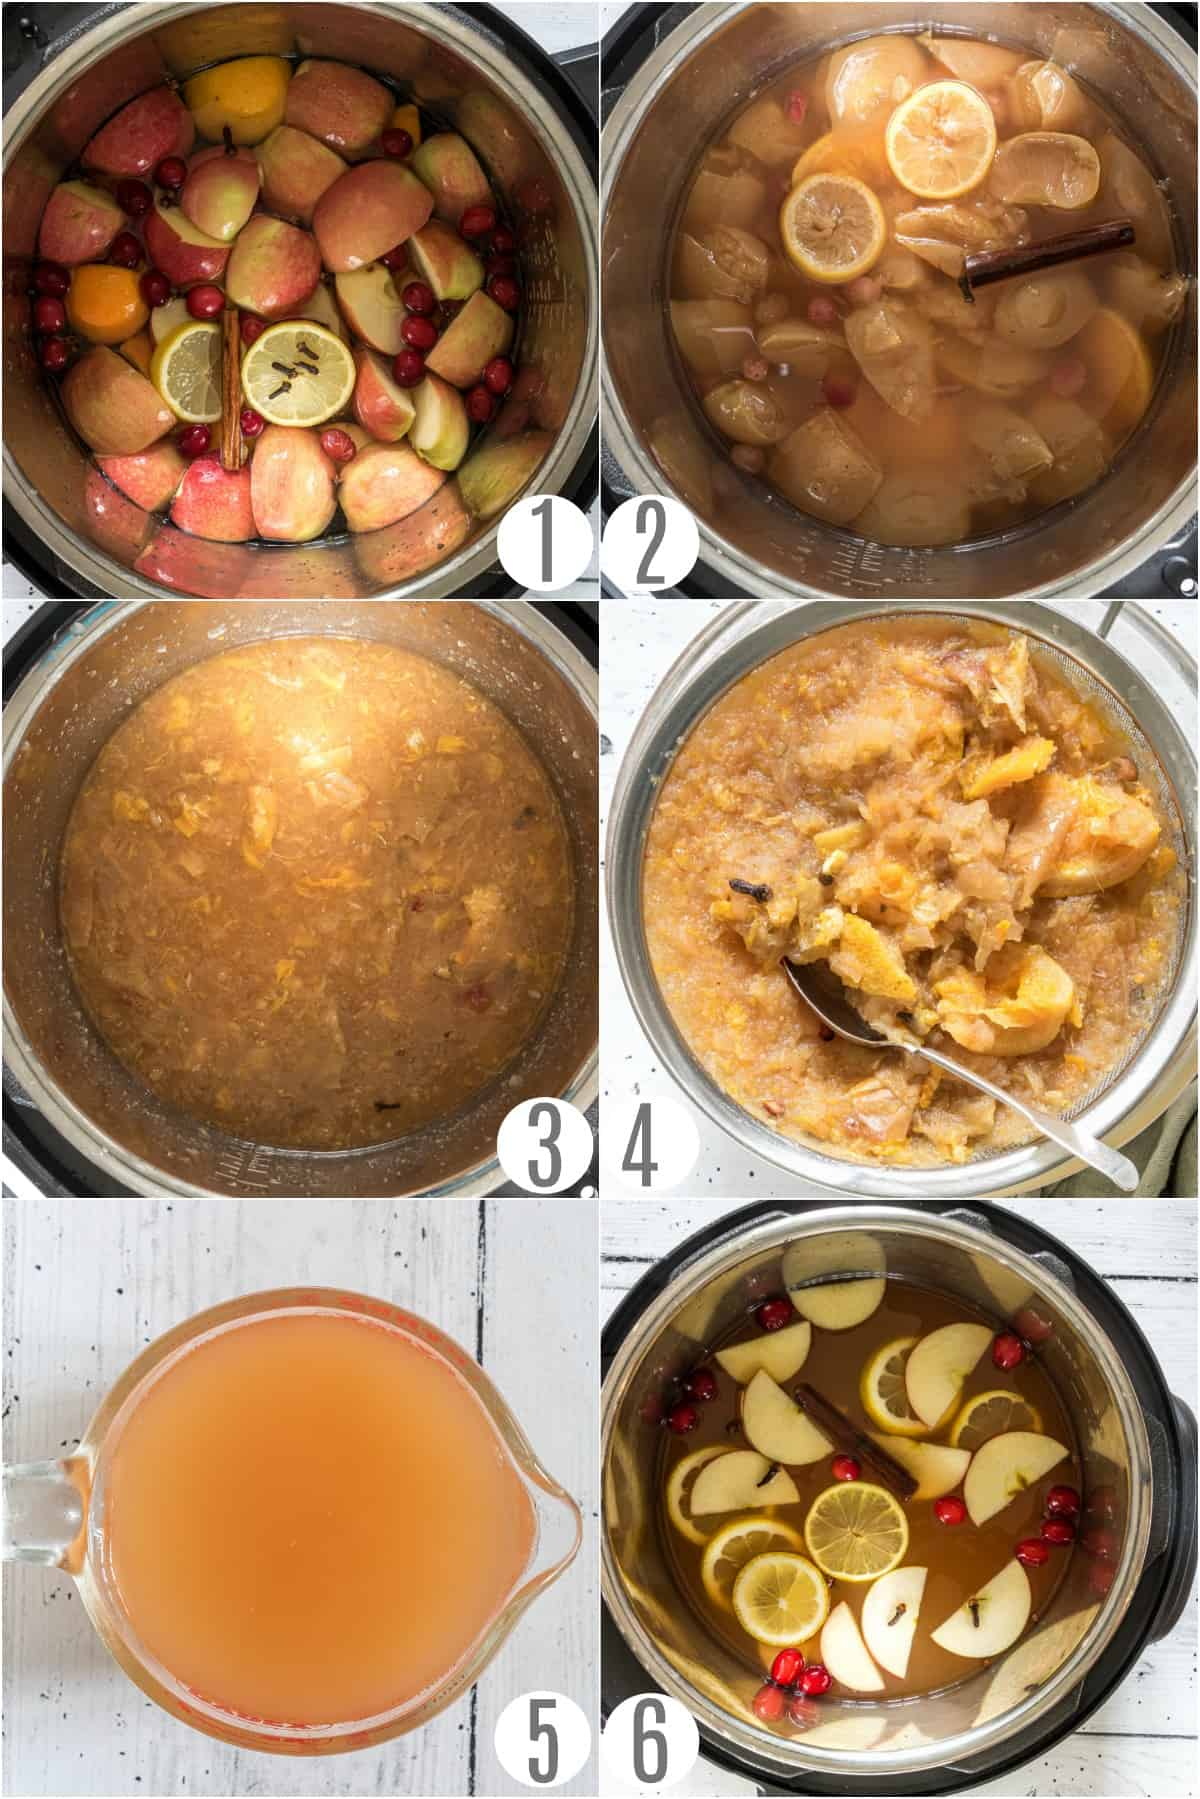 Step by step instructions showing how to make apple cider in the pressure cooker.